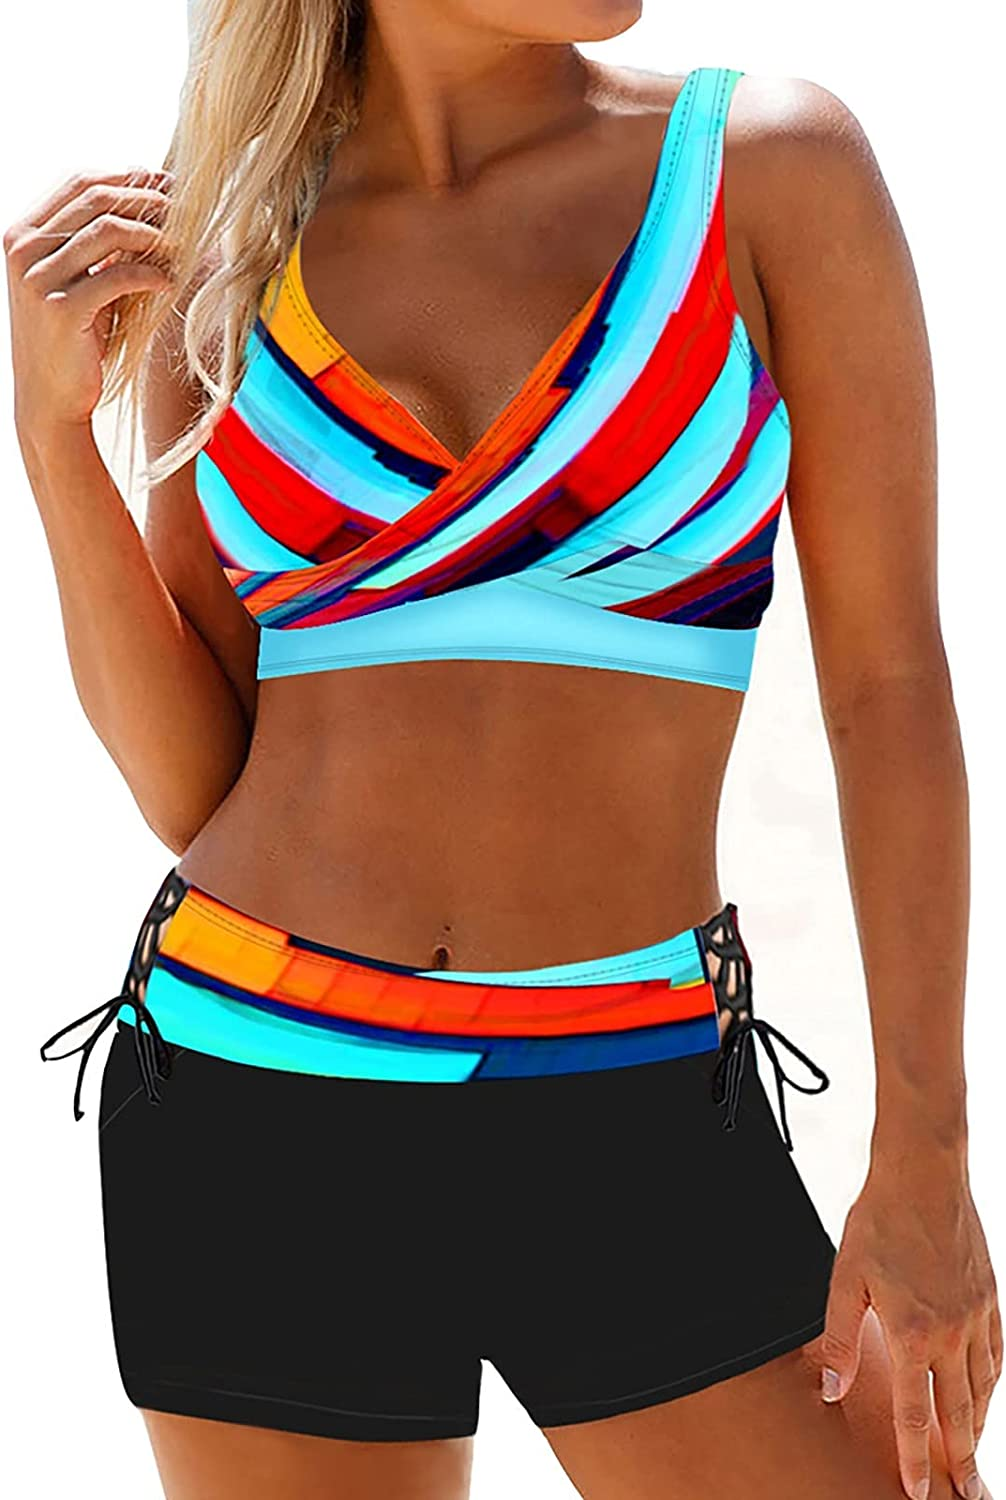 LIYALI Women's Bikini Swimsuits-Two Piece Swimsuit Strappy Tankini Swimsuits for Women with Shorts Drawstring Bathing Suits